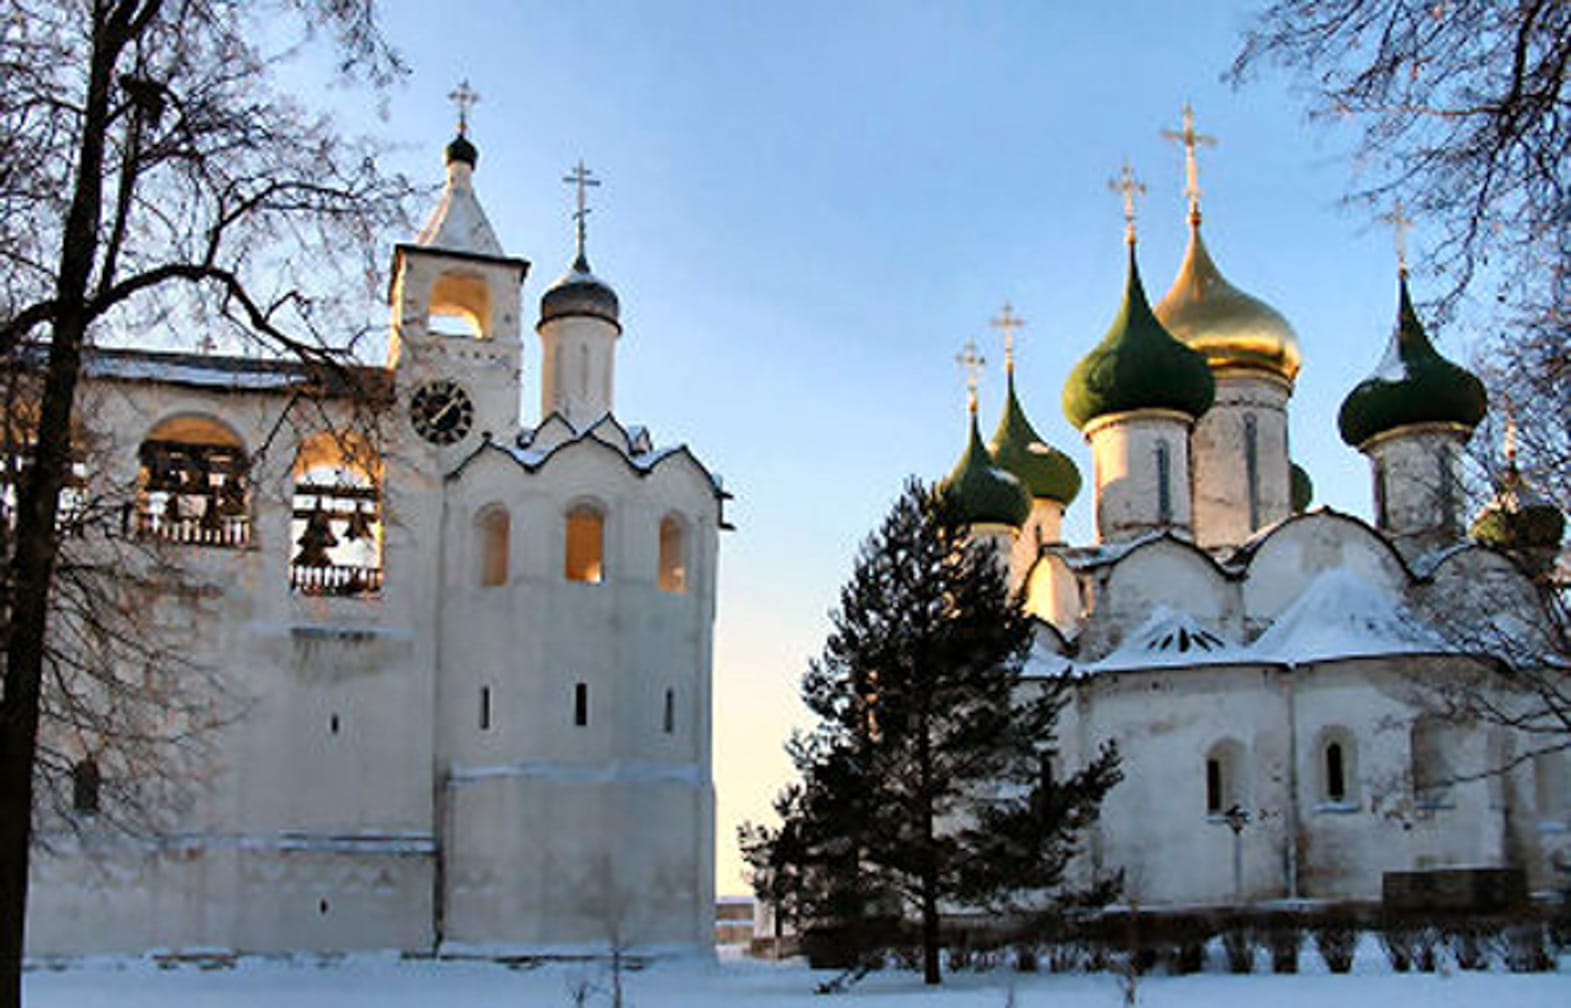 Church covered in snow on the Trans-Siberian Express Winter Wonderland journey